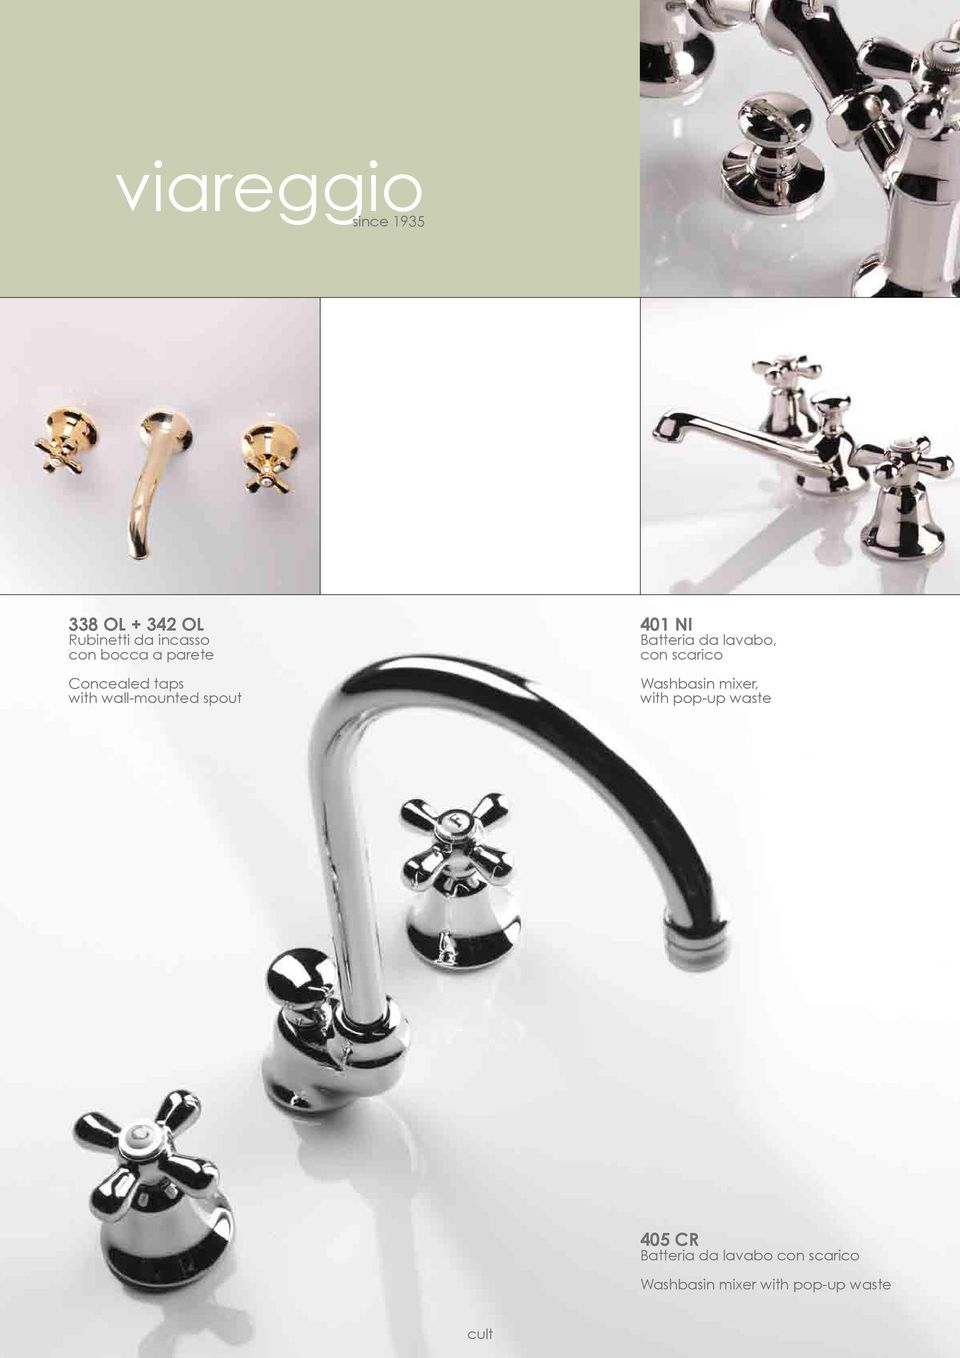 Batteria da lavabo, con scarico Washbasin mixer, with pop-up